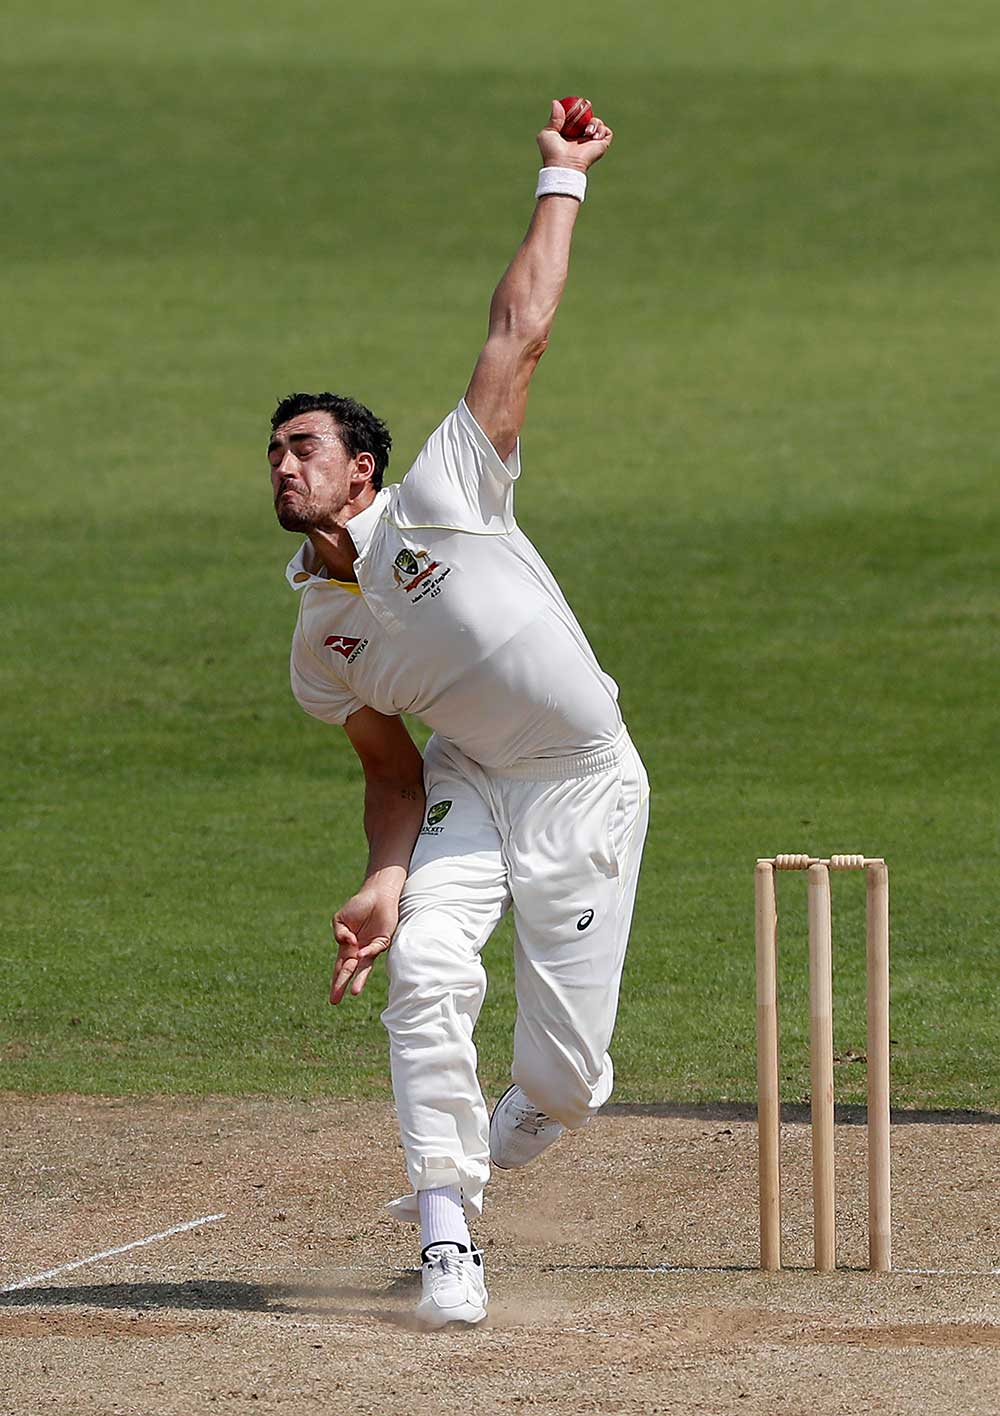 Mitchell Starc impressed with the old ball // Getty